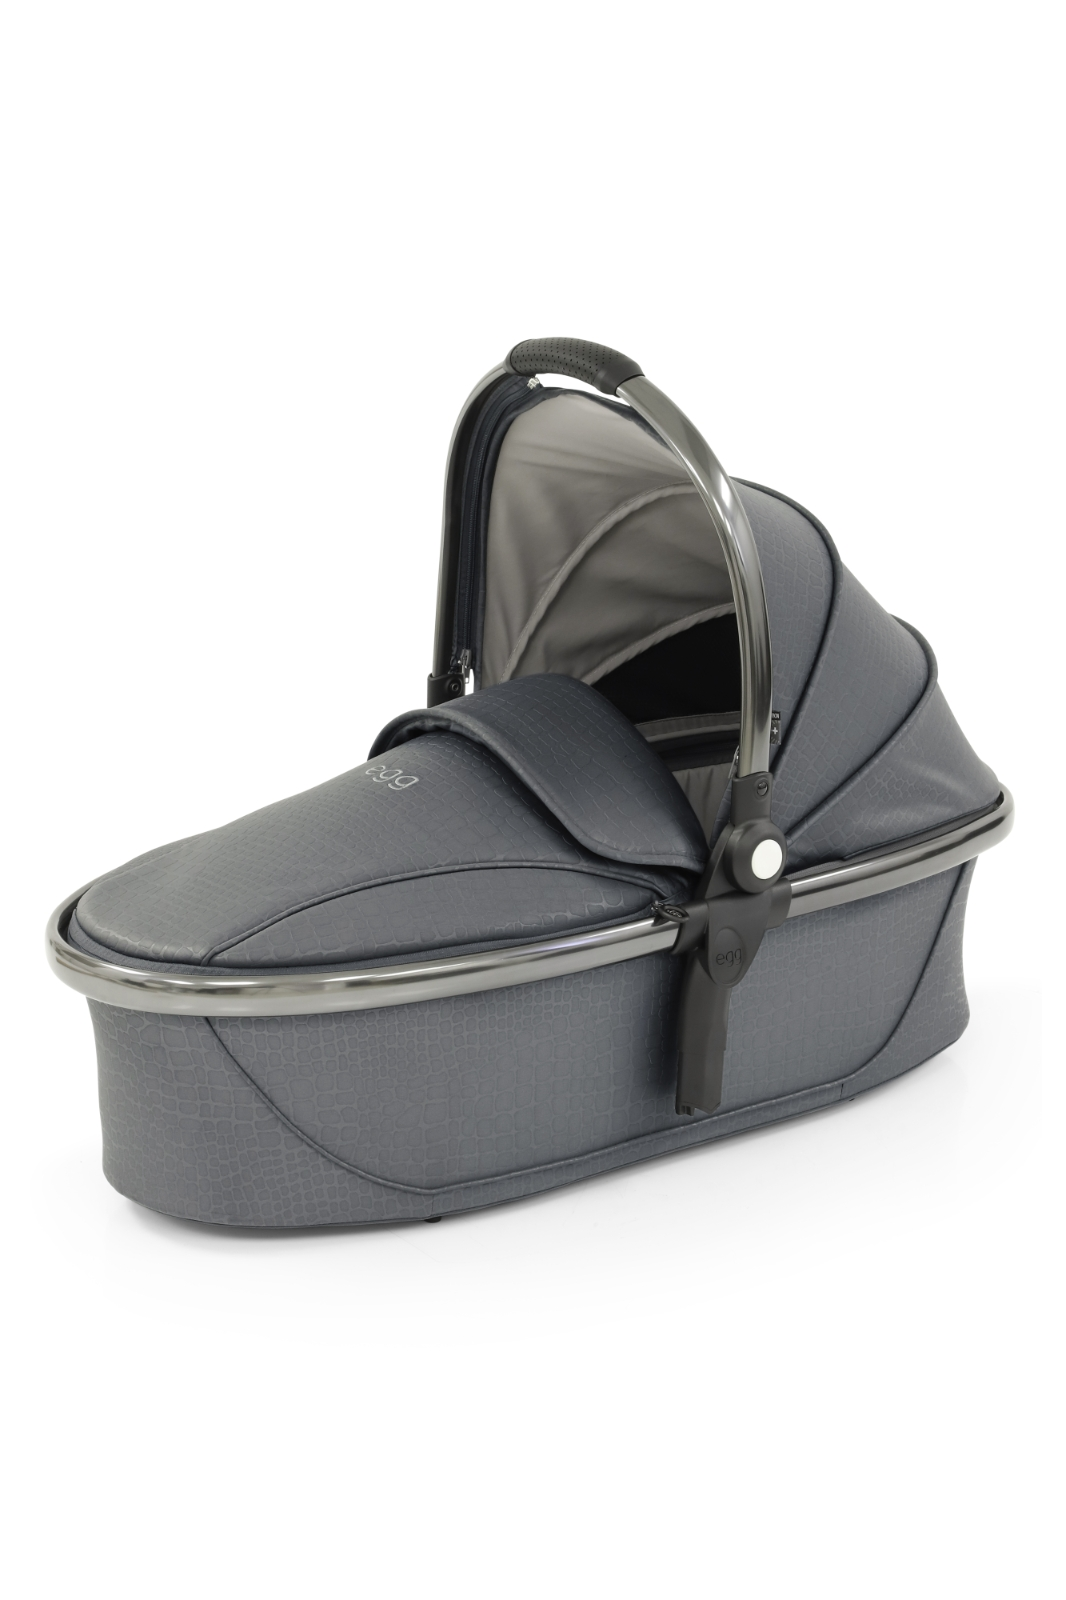 Egg 2 Carrycot Special Edition - Jurassic Grey